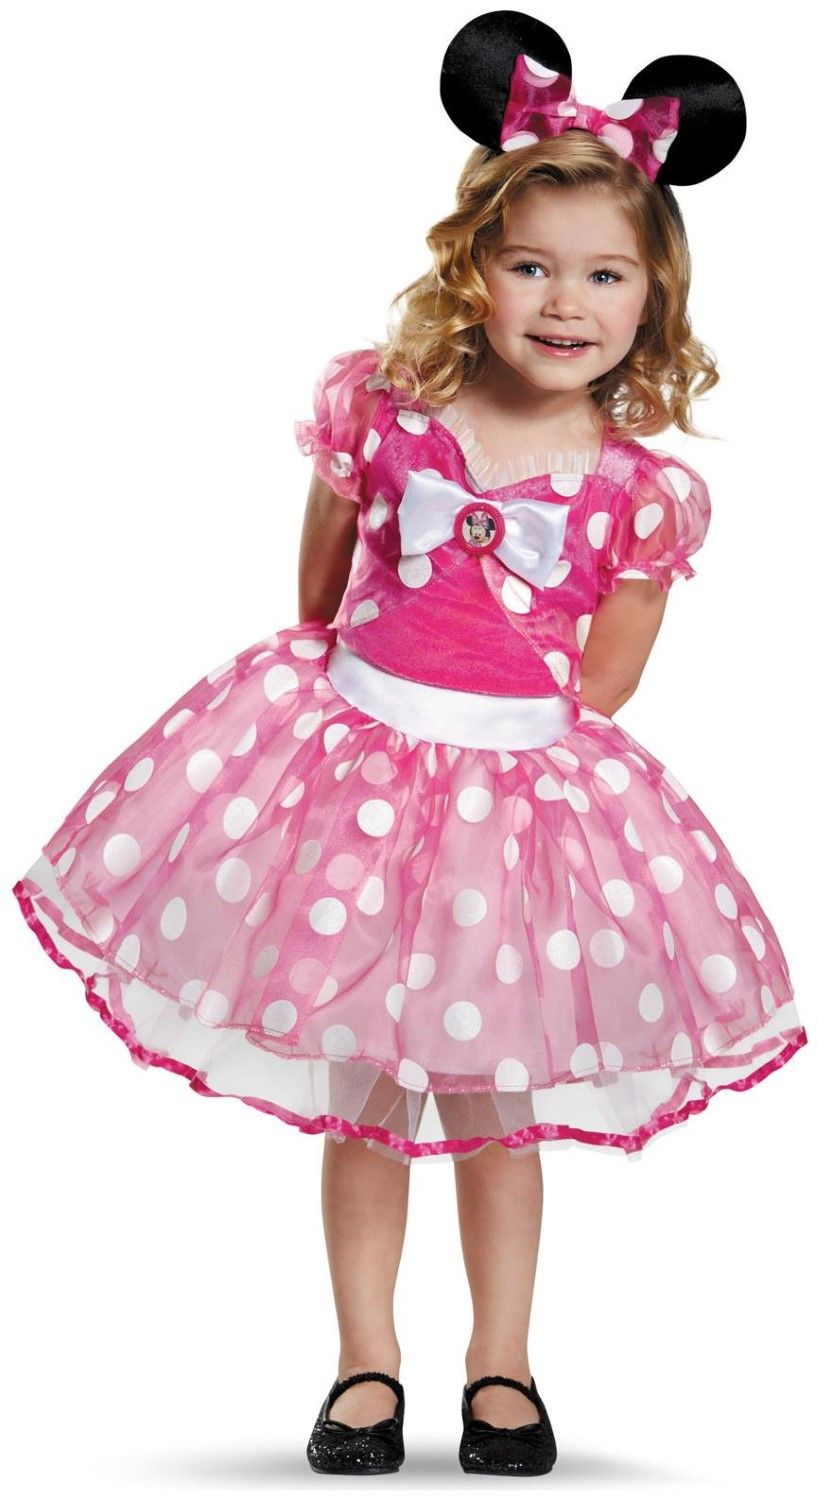 Pink Minnie Mouse inspired sun dress